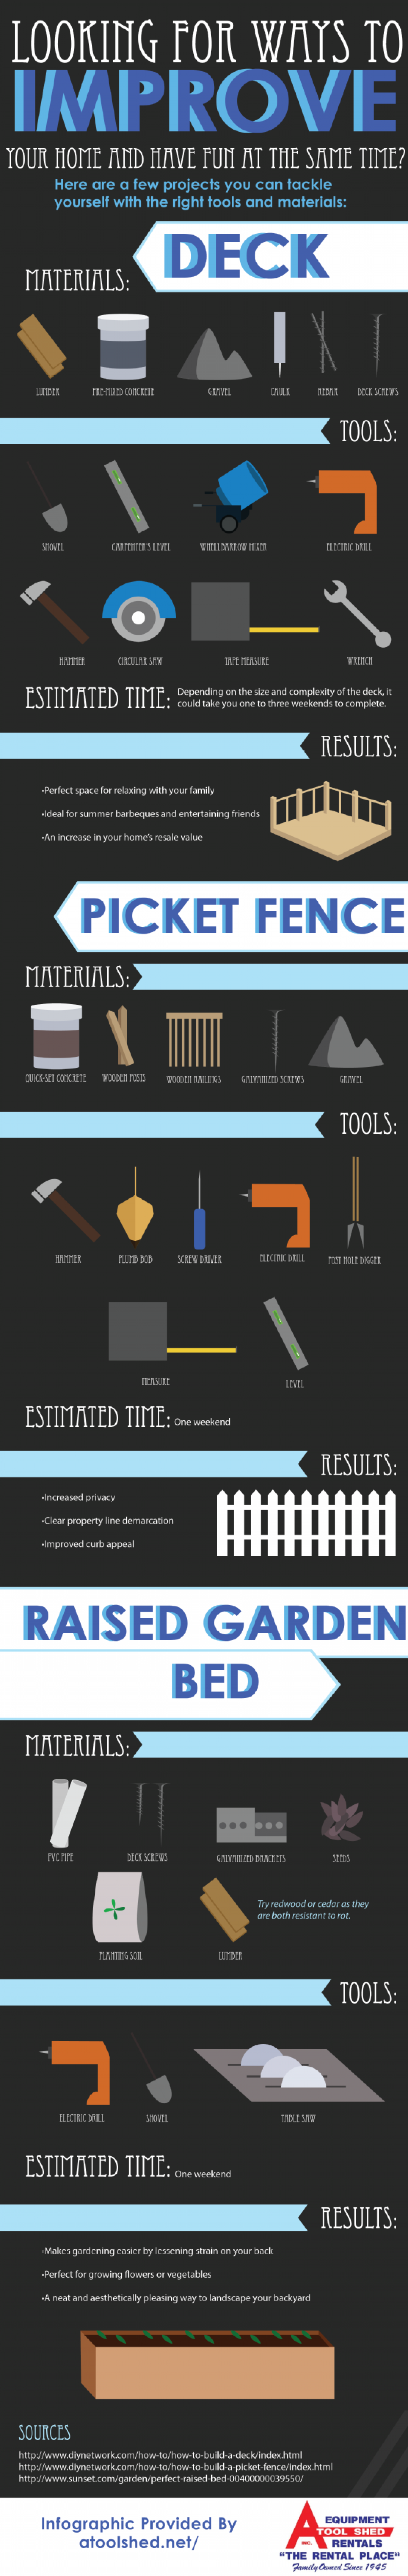 Do It Yourself: Rent Tools for Your Home Improvement Projects Infographic